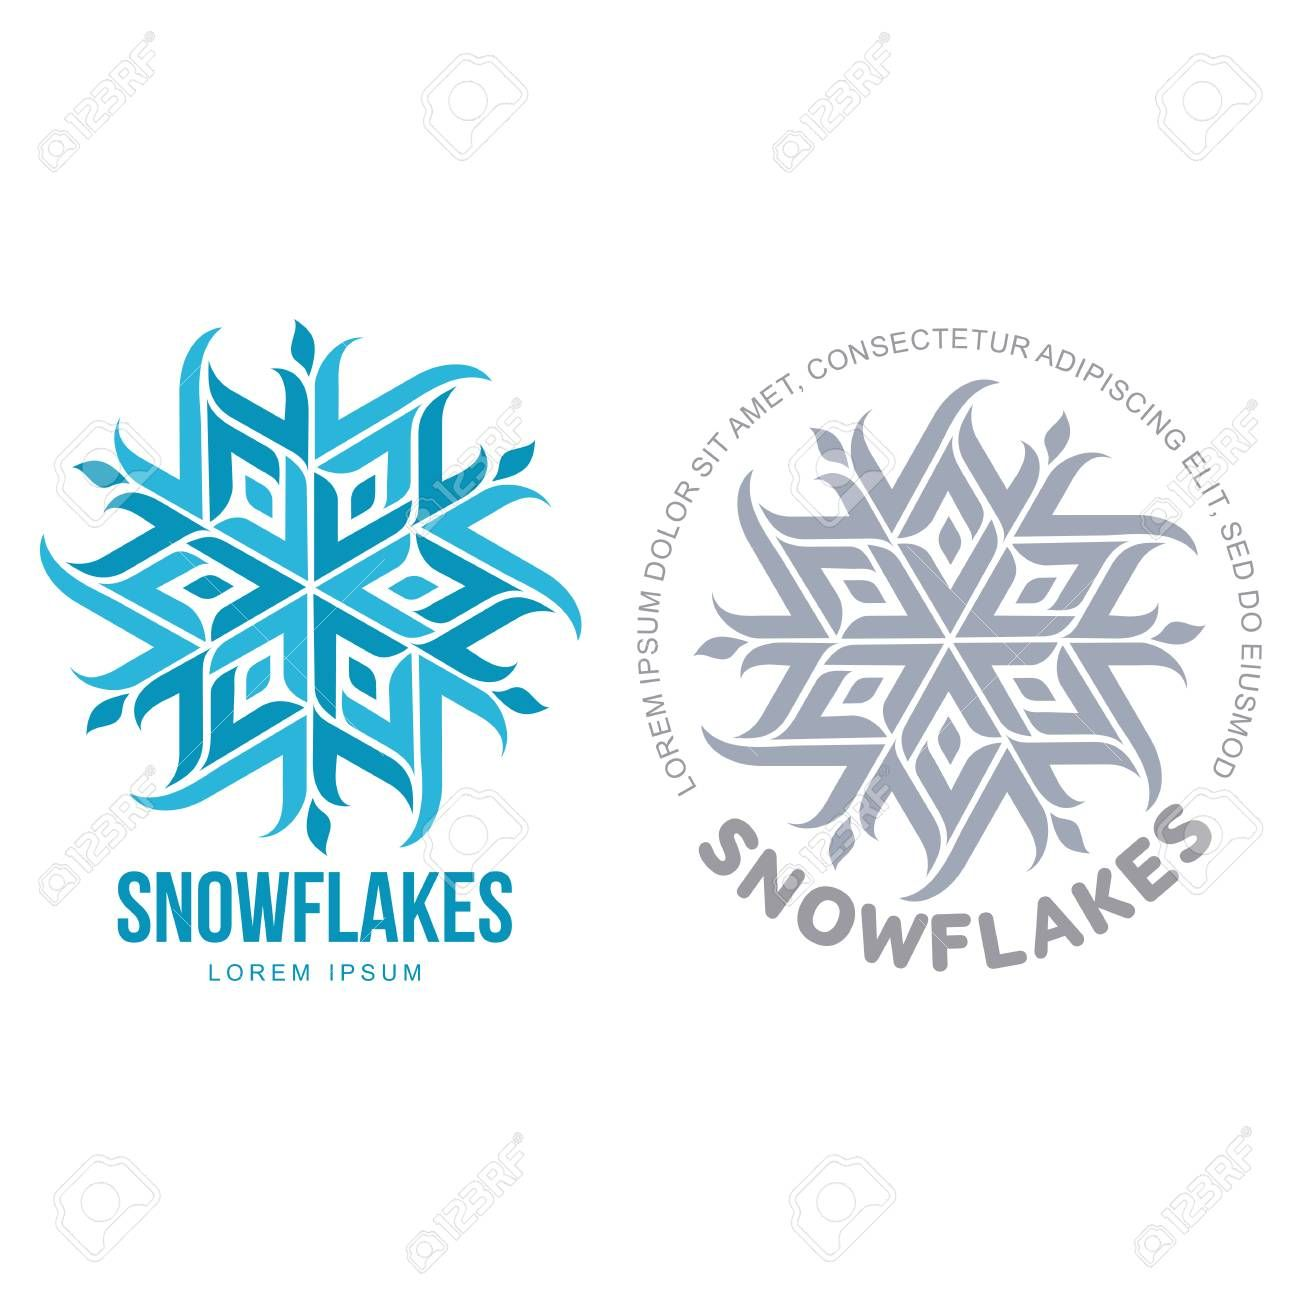 Snowflake vector logo templates isolated on white